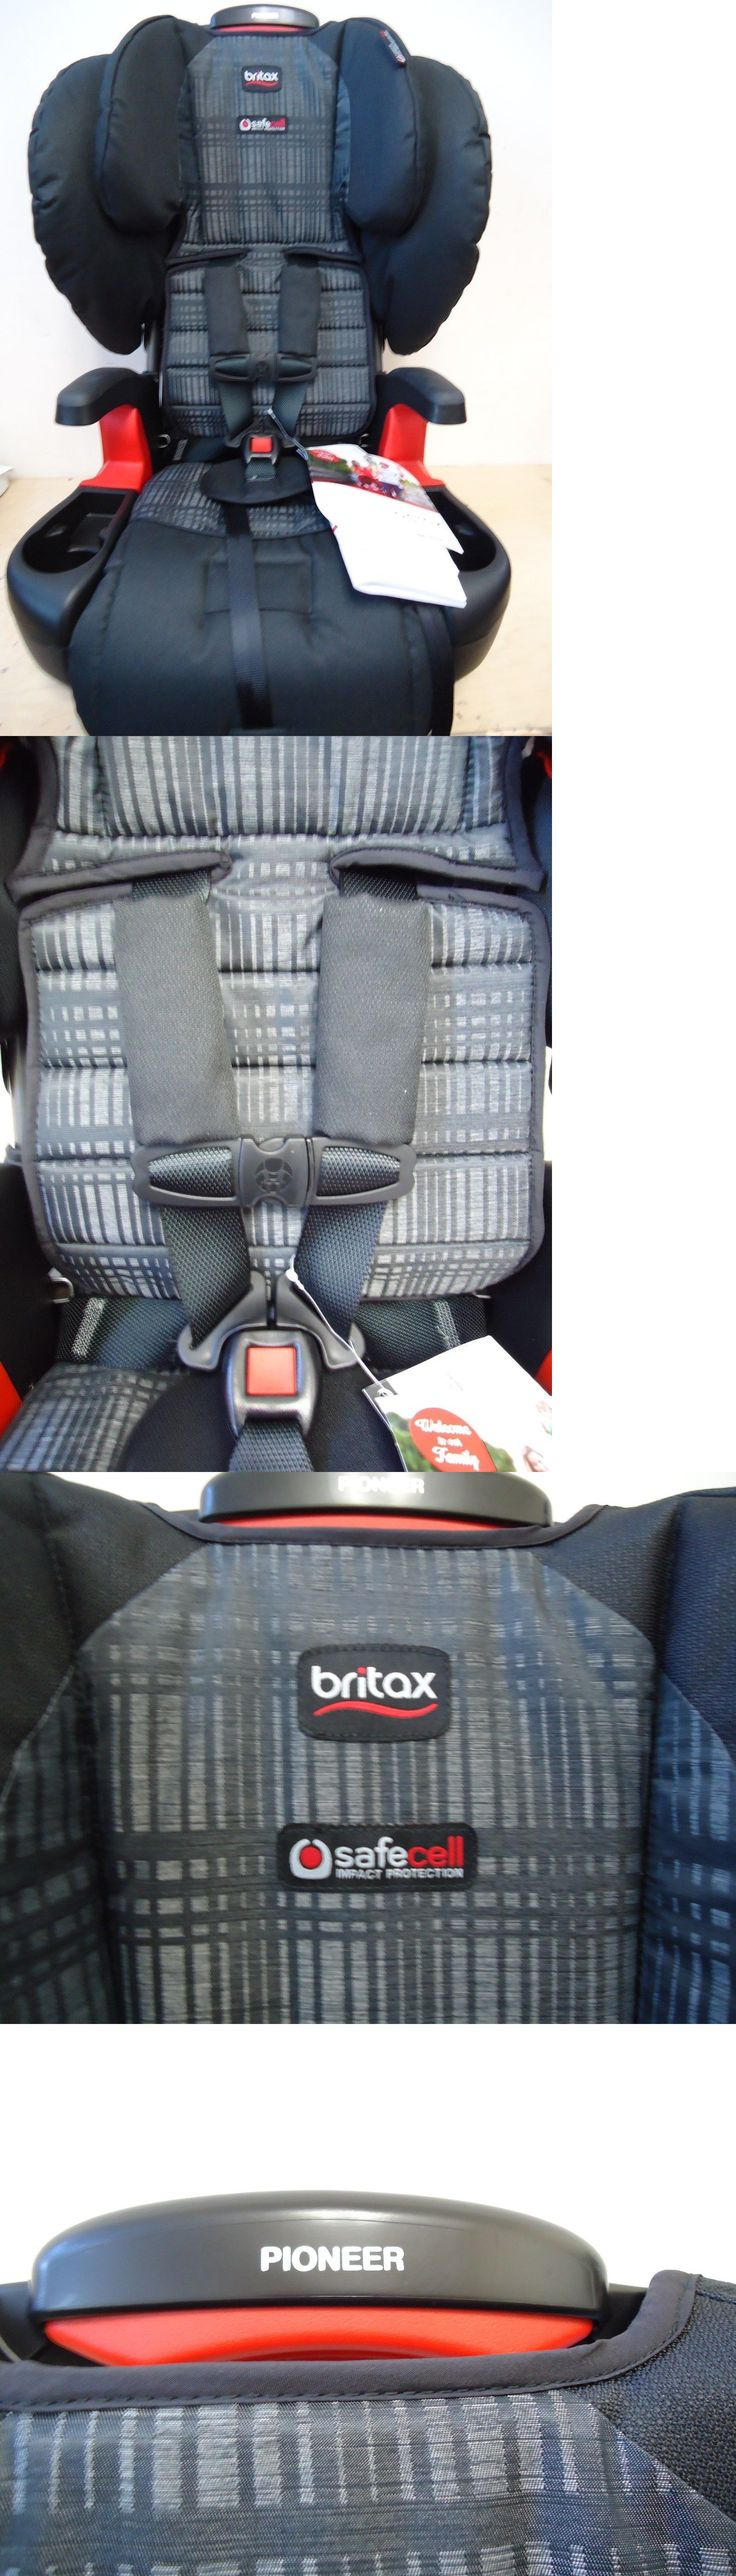 Booster to 80lbs 66694: Britax Pioneer G1.1 Harness 2 Booster Seat New -> BUY IT NOW ONLY: $174.95 on eBay!